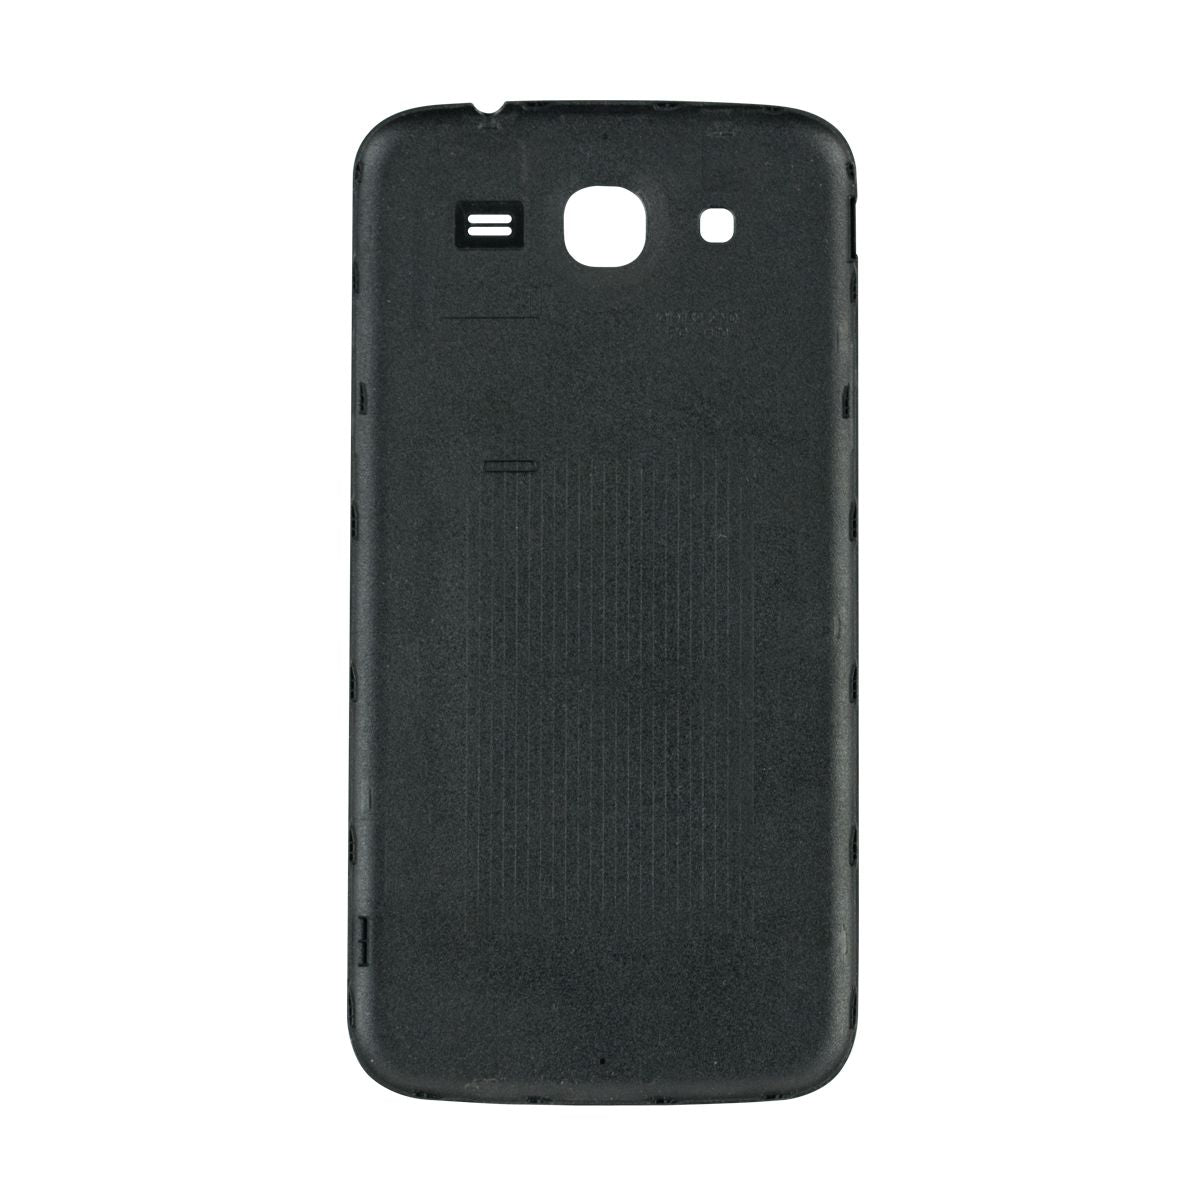 Samsung Galaxy Mega 5.8 Back Battery Cover